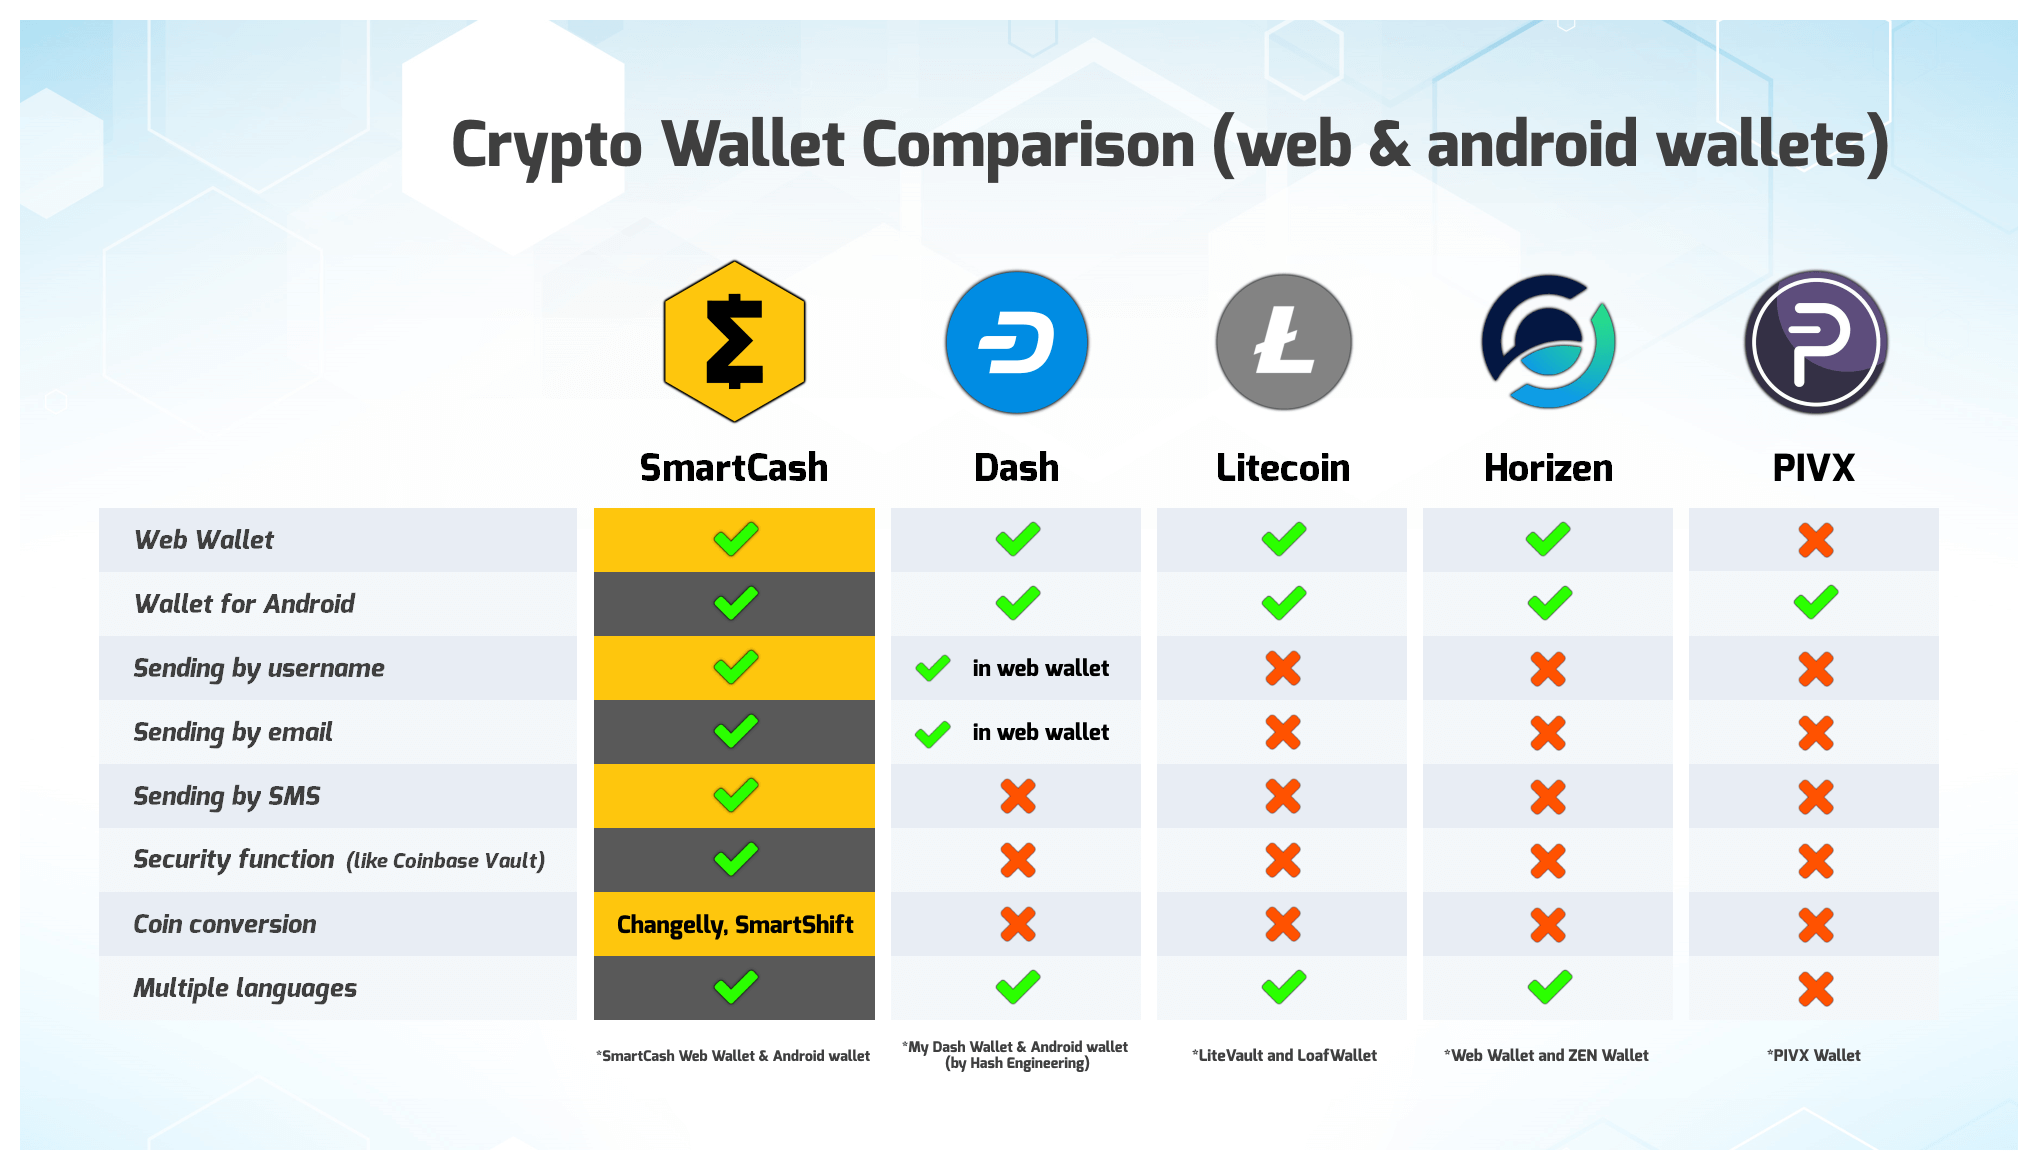 SmartCash Android and Web Wallet Comparisons